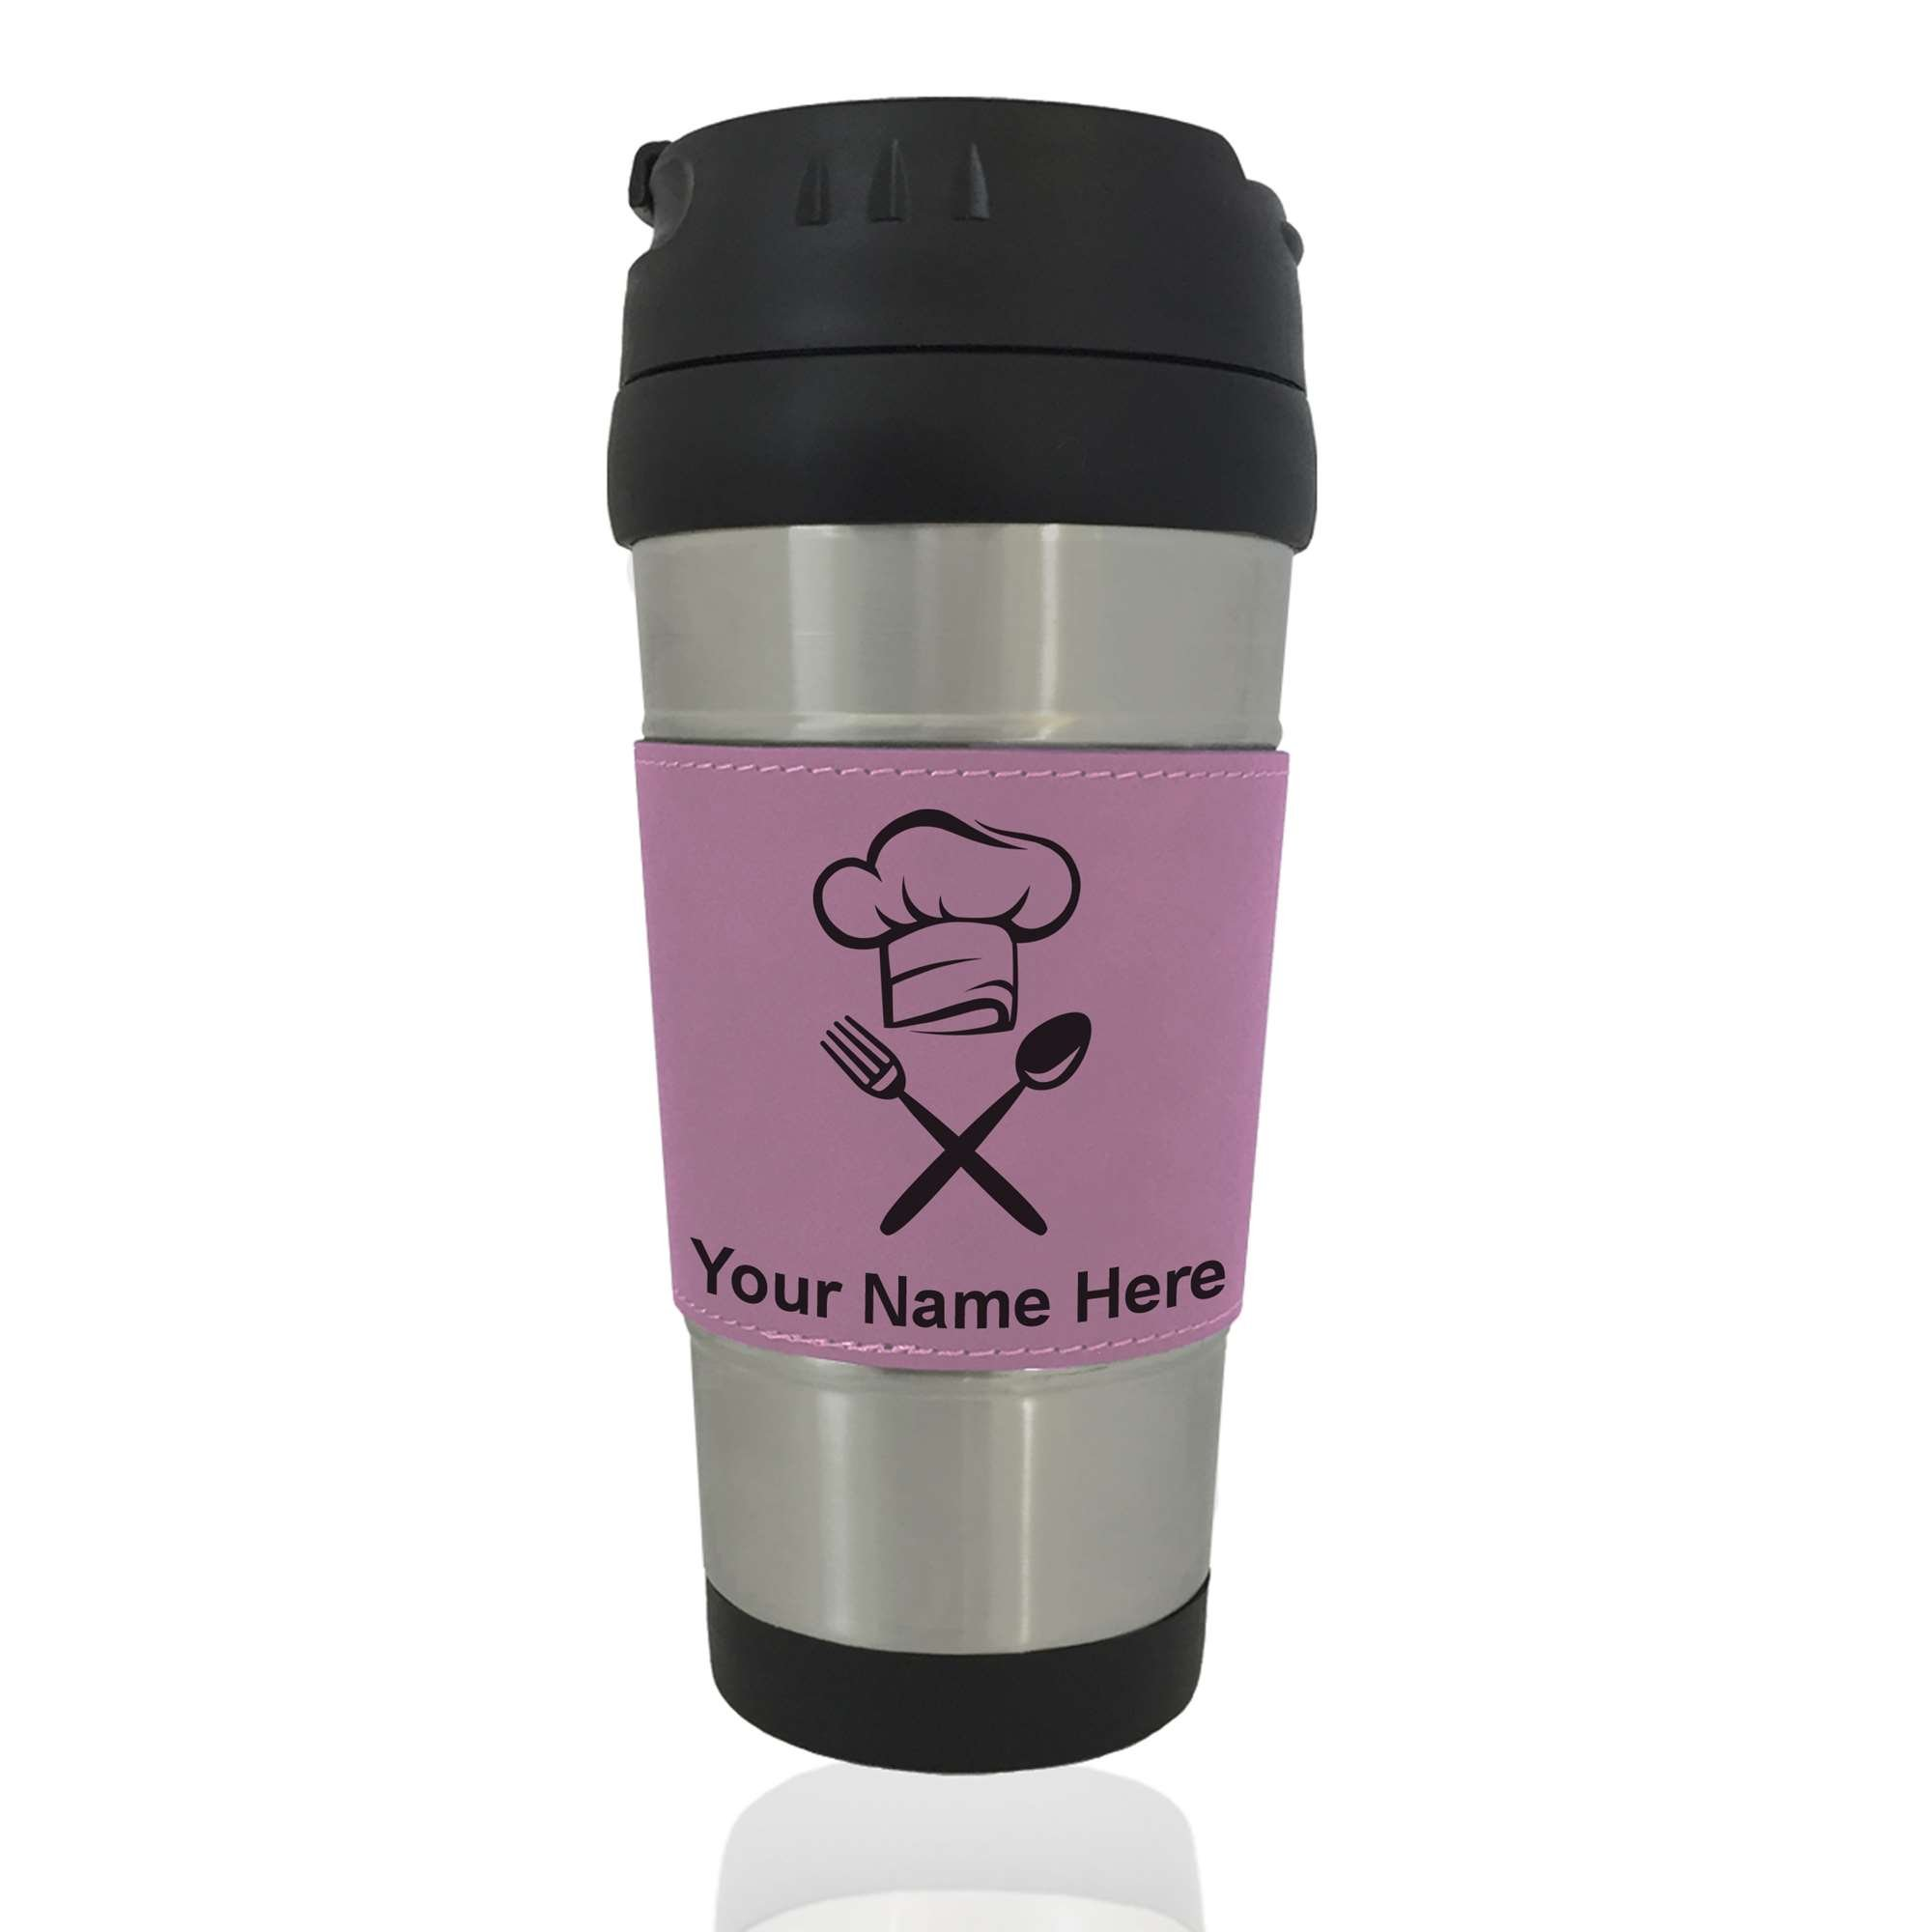 Travel Mug - Chef Hat - Personalized Engraving Included (Pink)